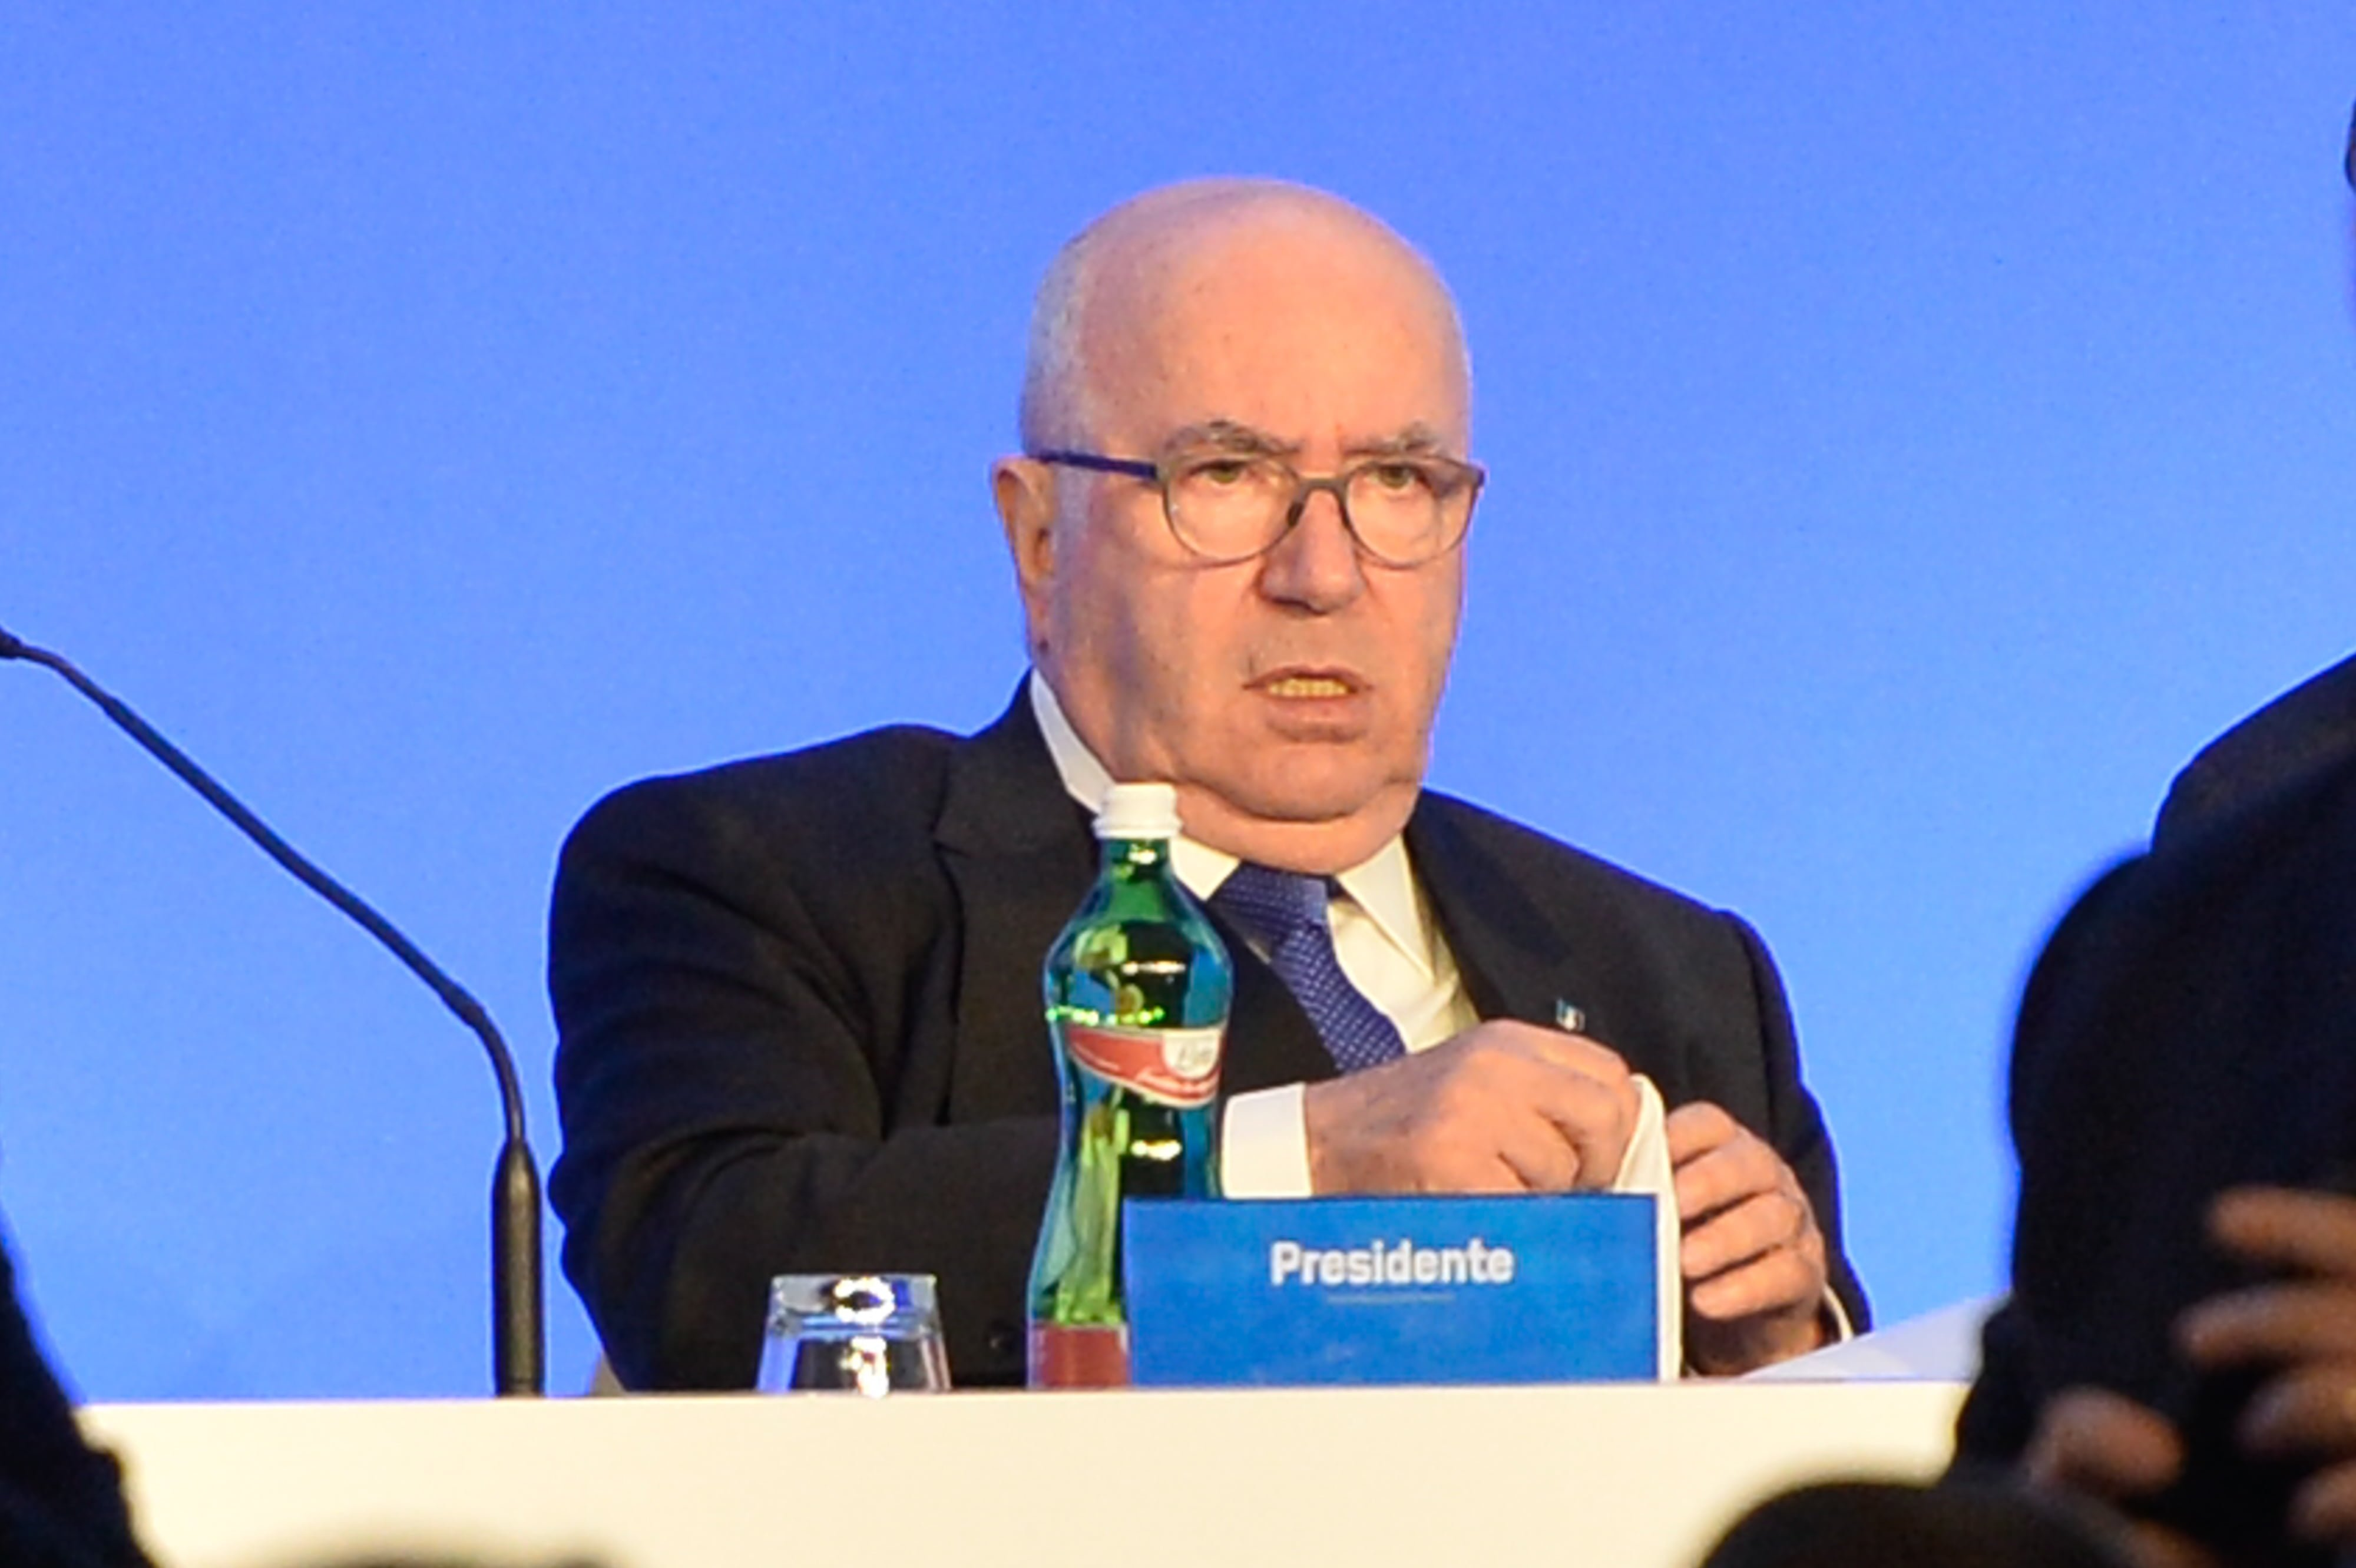 January 29, 2018 - Rome, Italy - Carlo Tavecchio attends the Italian Football Federation (FIGC) new president elections on January 29, 2018 in Rome, Italy (Credit Image: © Silvia Lore/NurPhoto via ZUMA Press) FOT. ZUMAPRESS.com / NEWSPIX.PL POLAND ONLY !!! --- Newspix.pl *** Local Caption *** www.newspix.pl mail us: info@newspix.pl call us: 0048 022 23 22 222 --- Polish Picture Agency by Ringier Axel Springer Poland